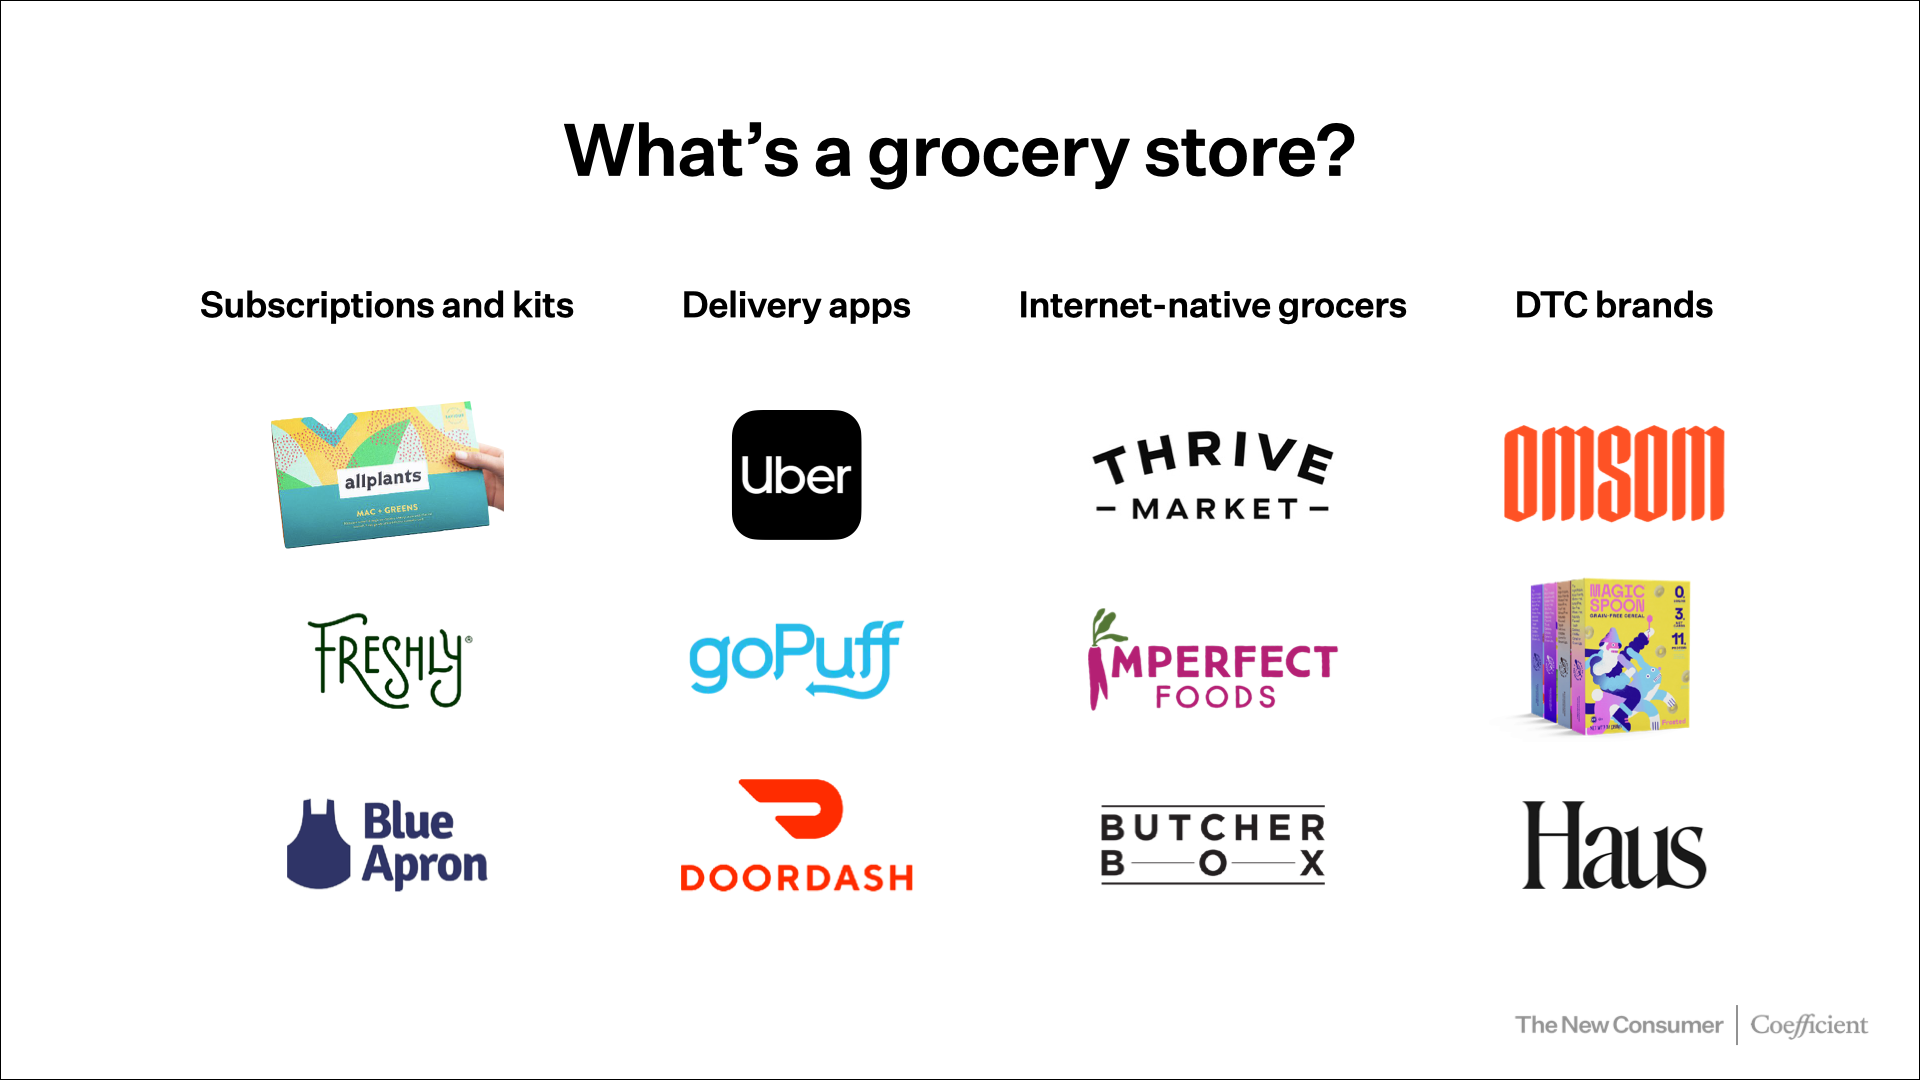 What's a grocery store?